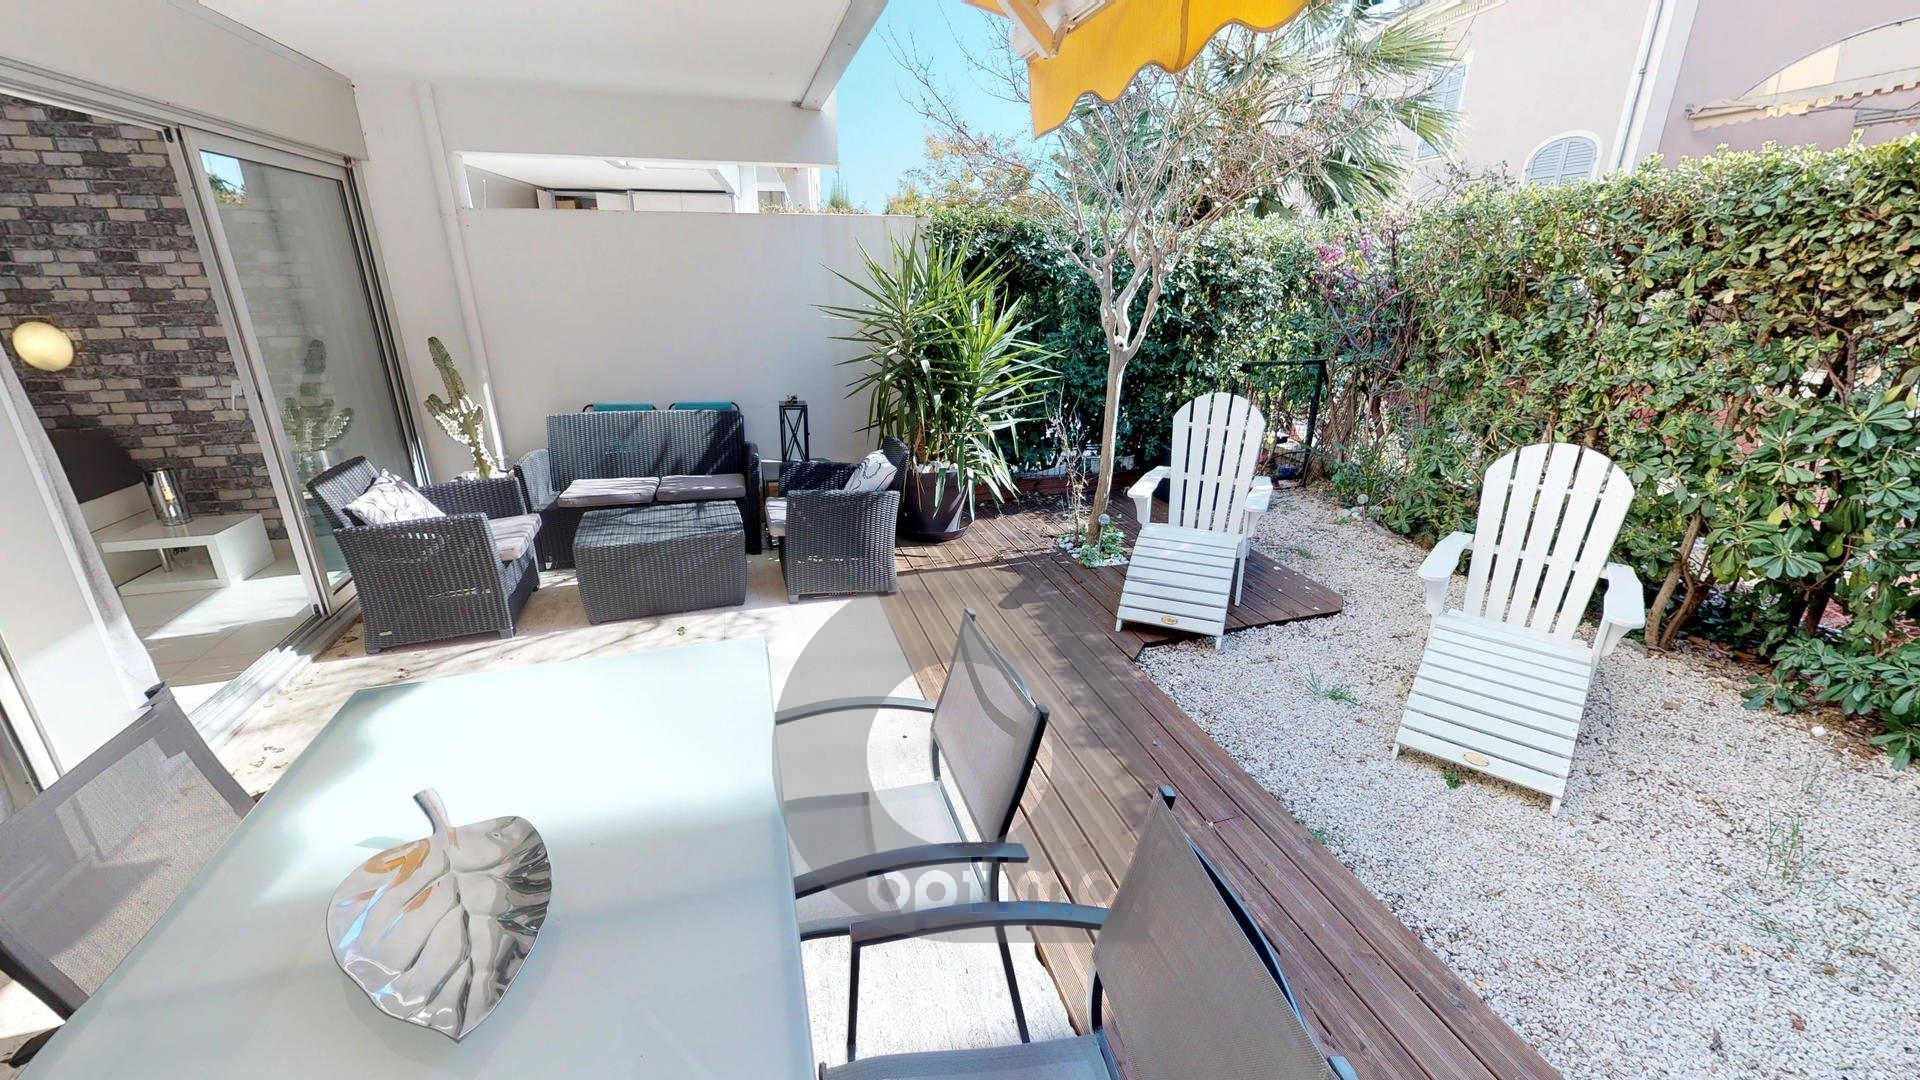 Quiet 2rooms with terrace, little garden, parking and swiming pool